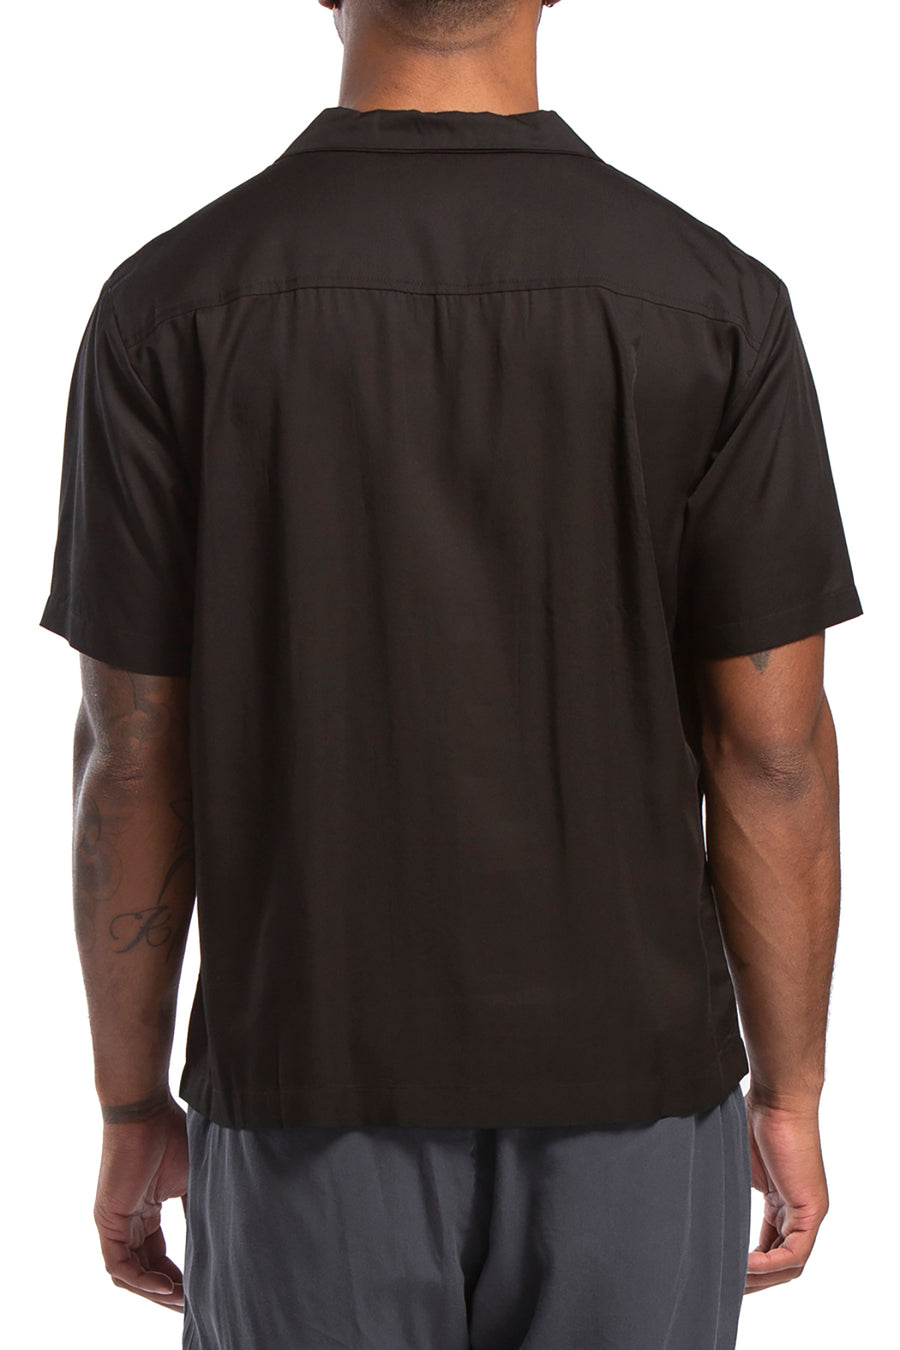 candorofficial - Bascc Lounge Shirt, Black - Shirts